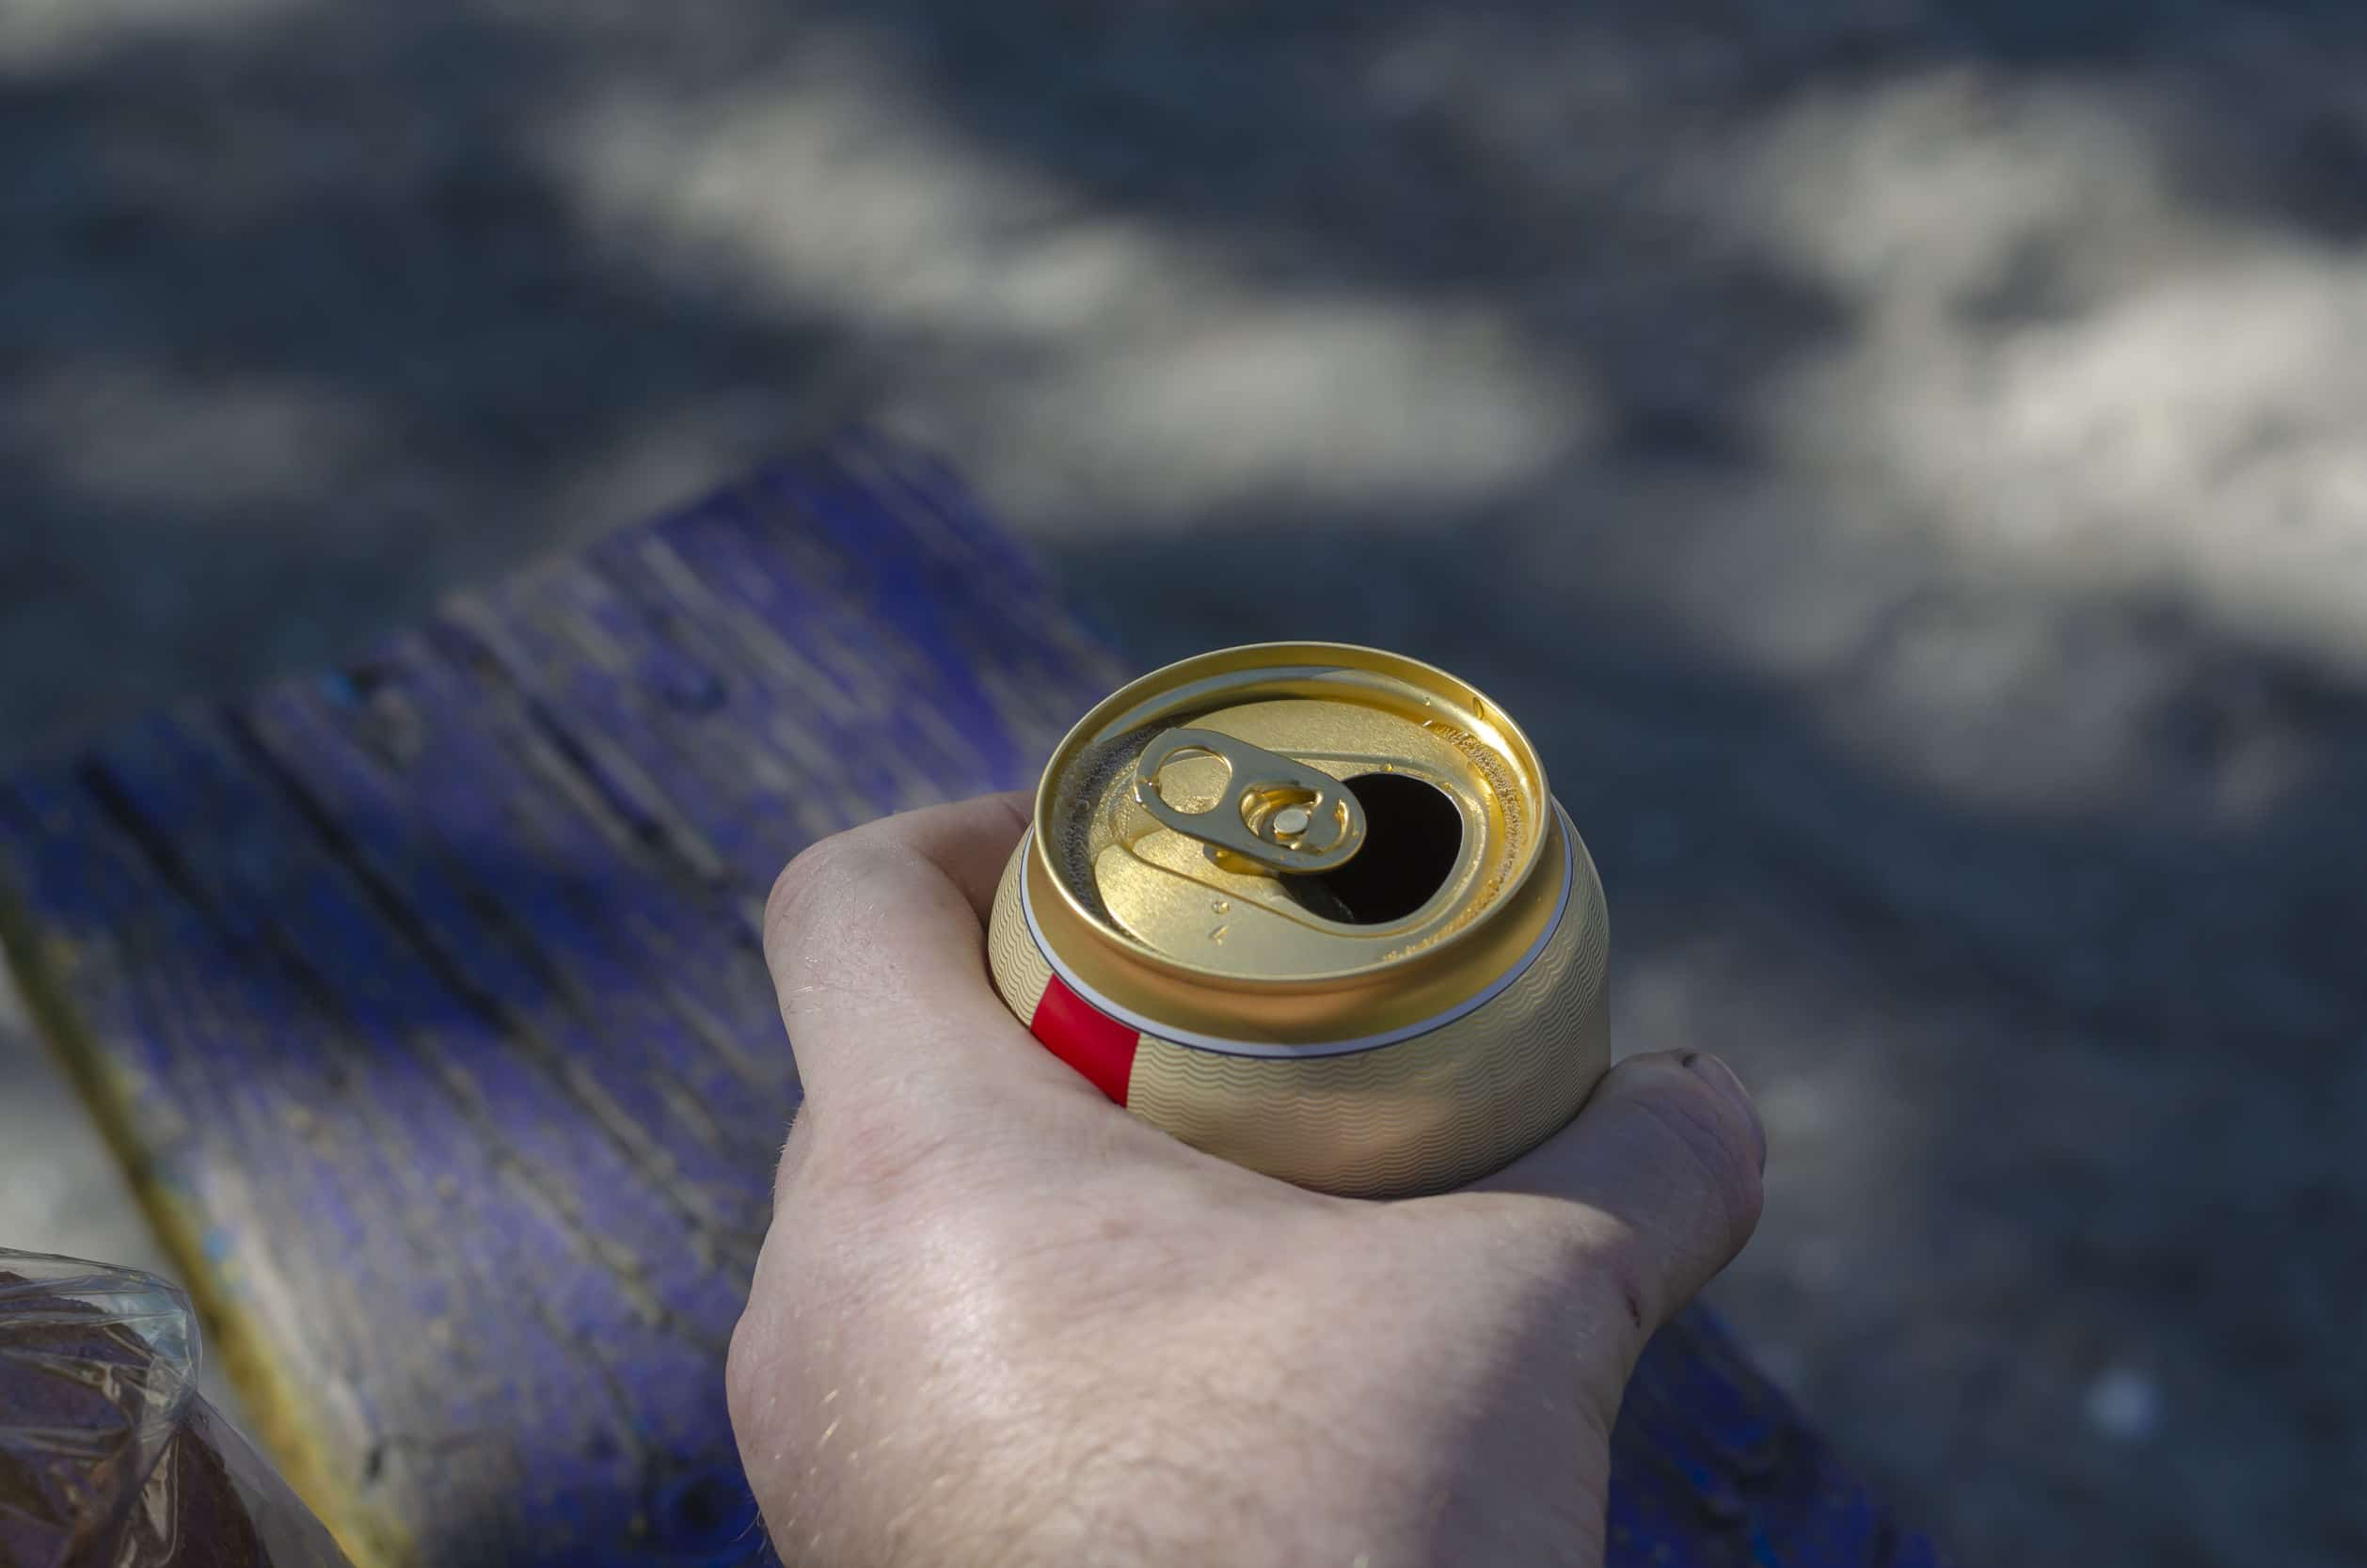 Texas Open Container Laws Not So Straightforward